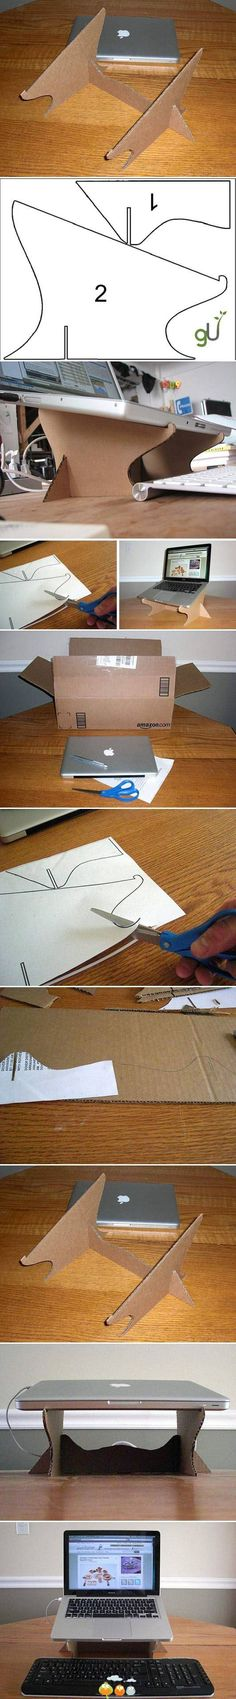 laptop stand....cardboard!: